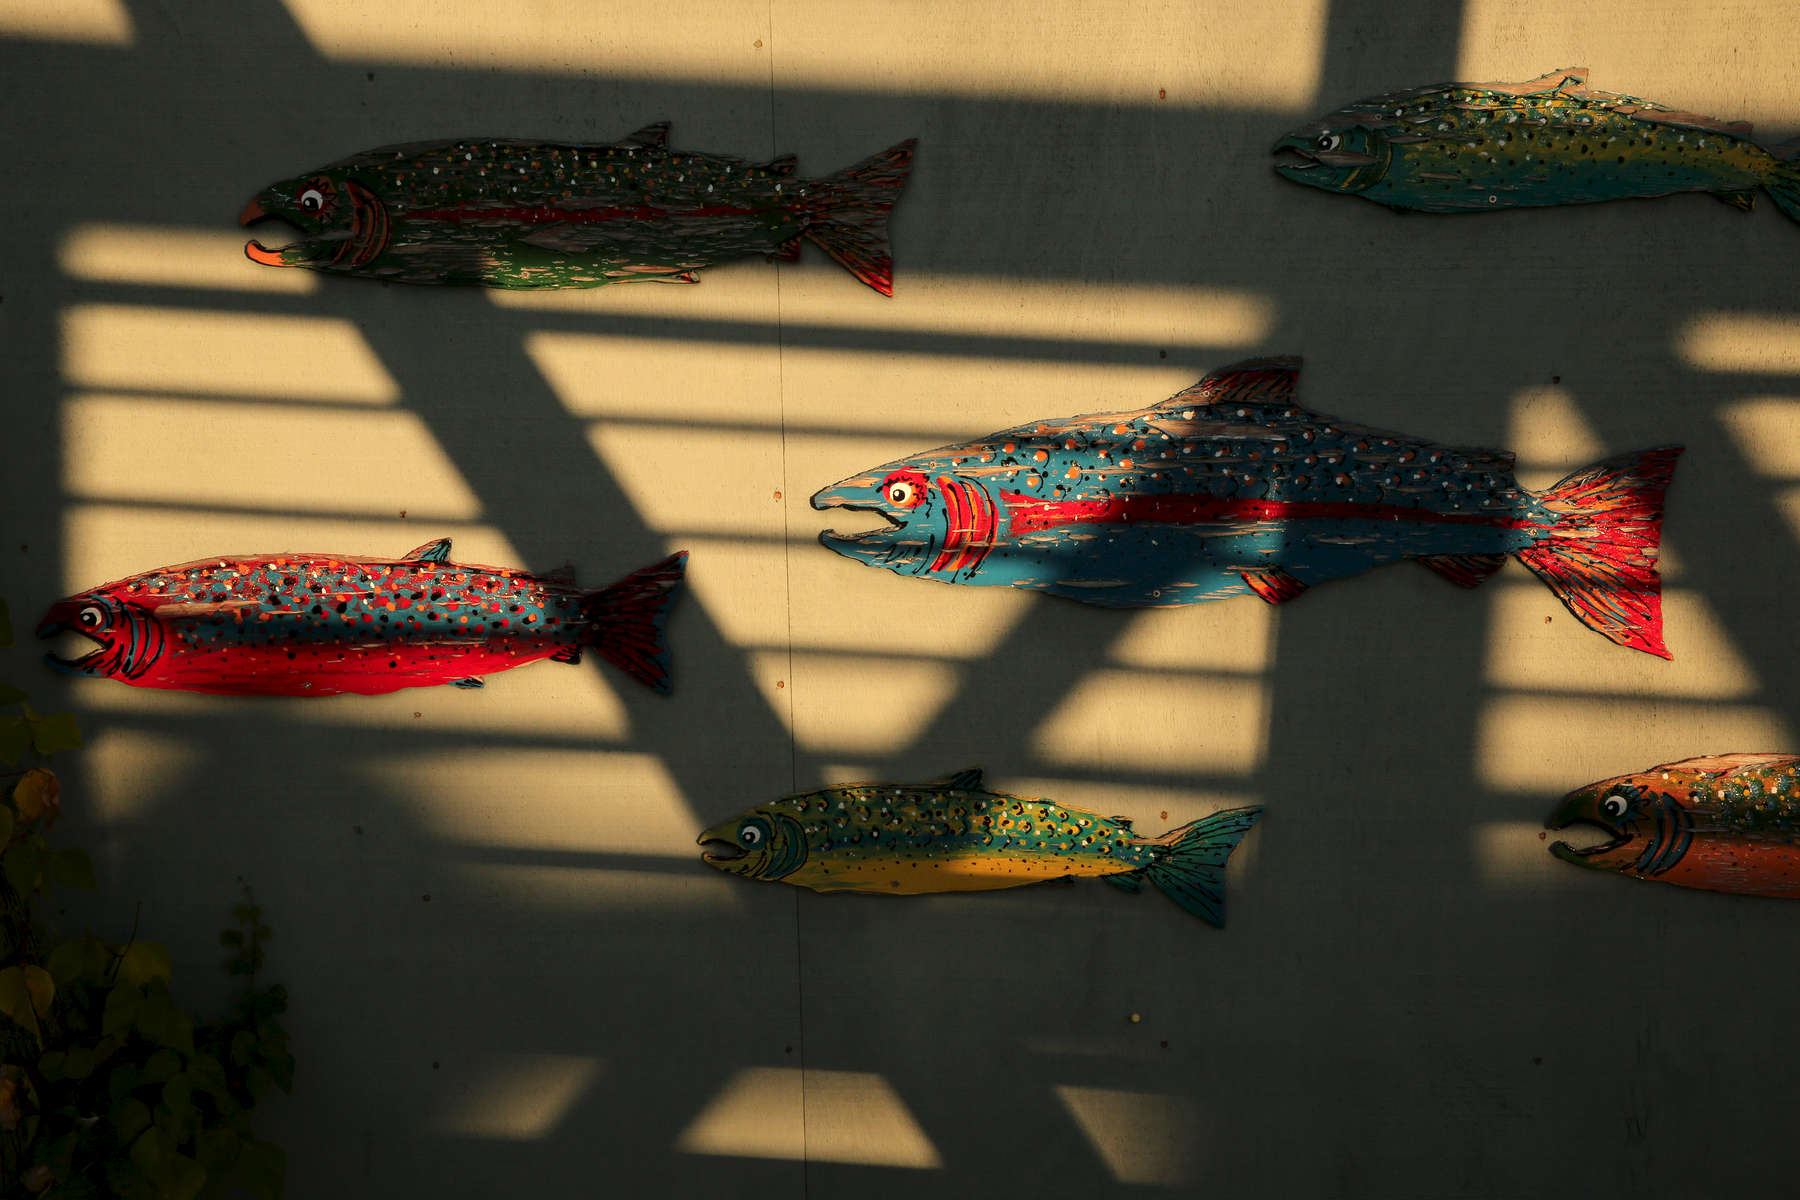 Painted salmon adorn the wall of a fish shop.